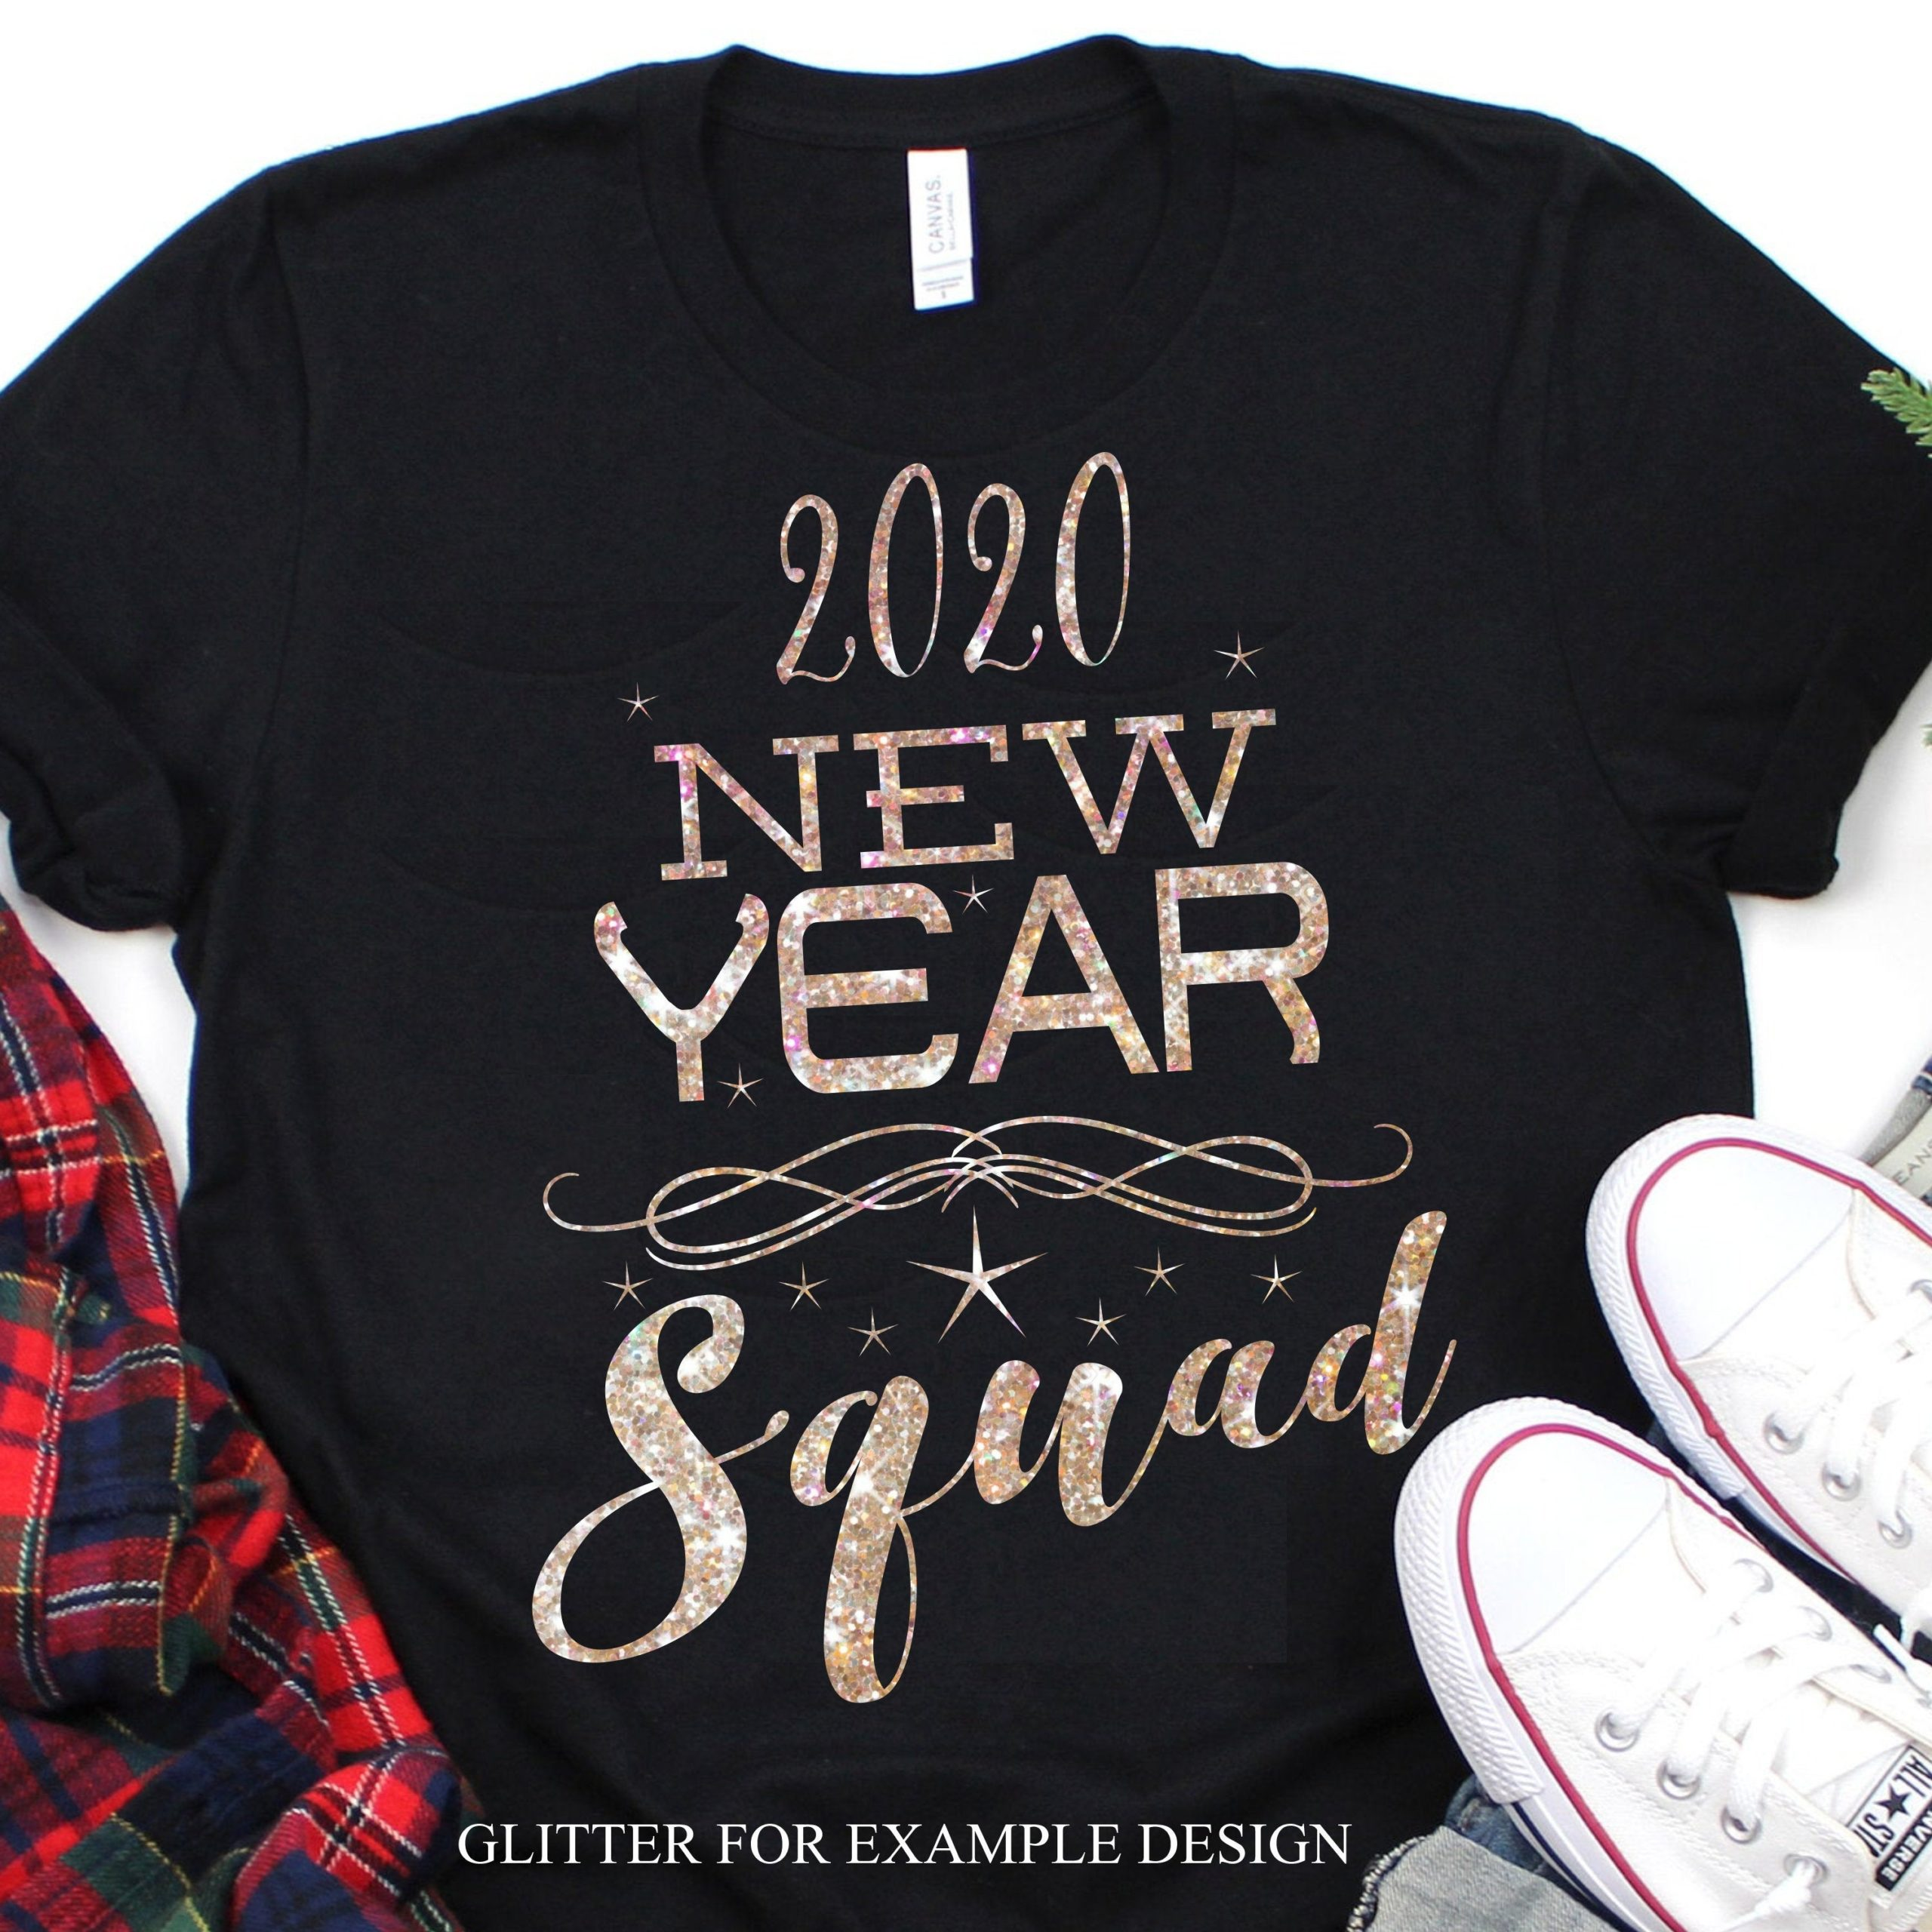 New-year-squad-svgnew-year-svghot-mess-svghappy-new-year-svgnew-year-shirt-svgnew-year-tshirtsvg-for-cricut2020-happy-new-year-svg-5e2210d7